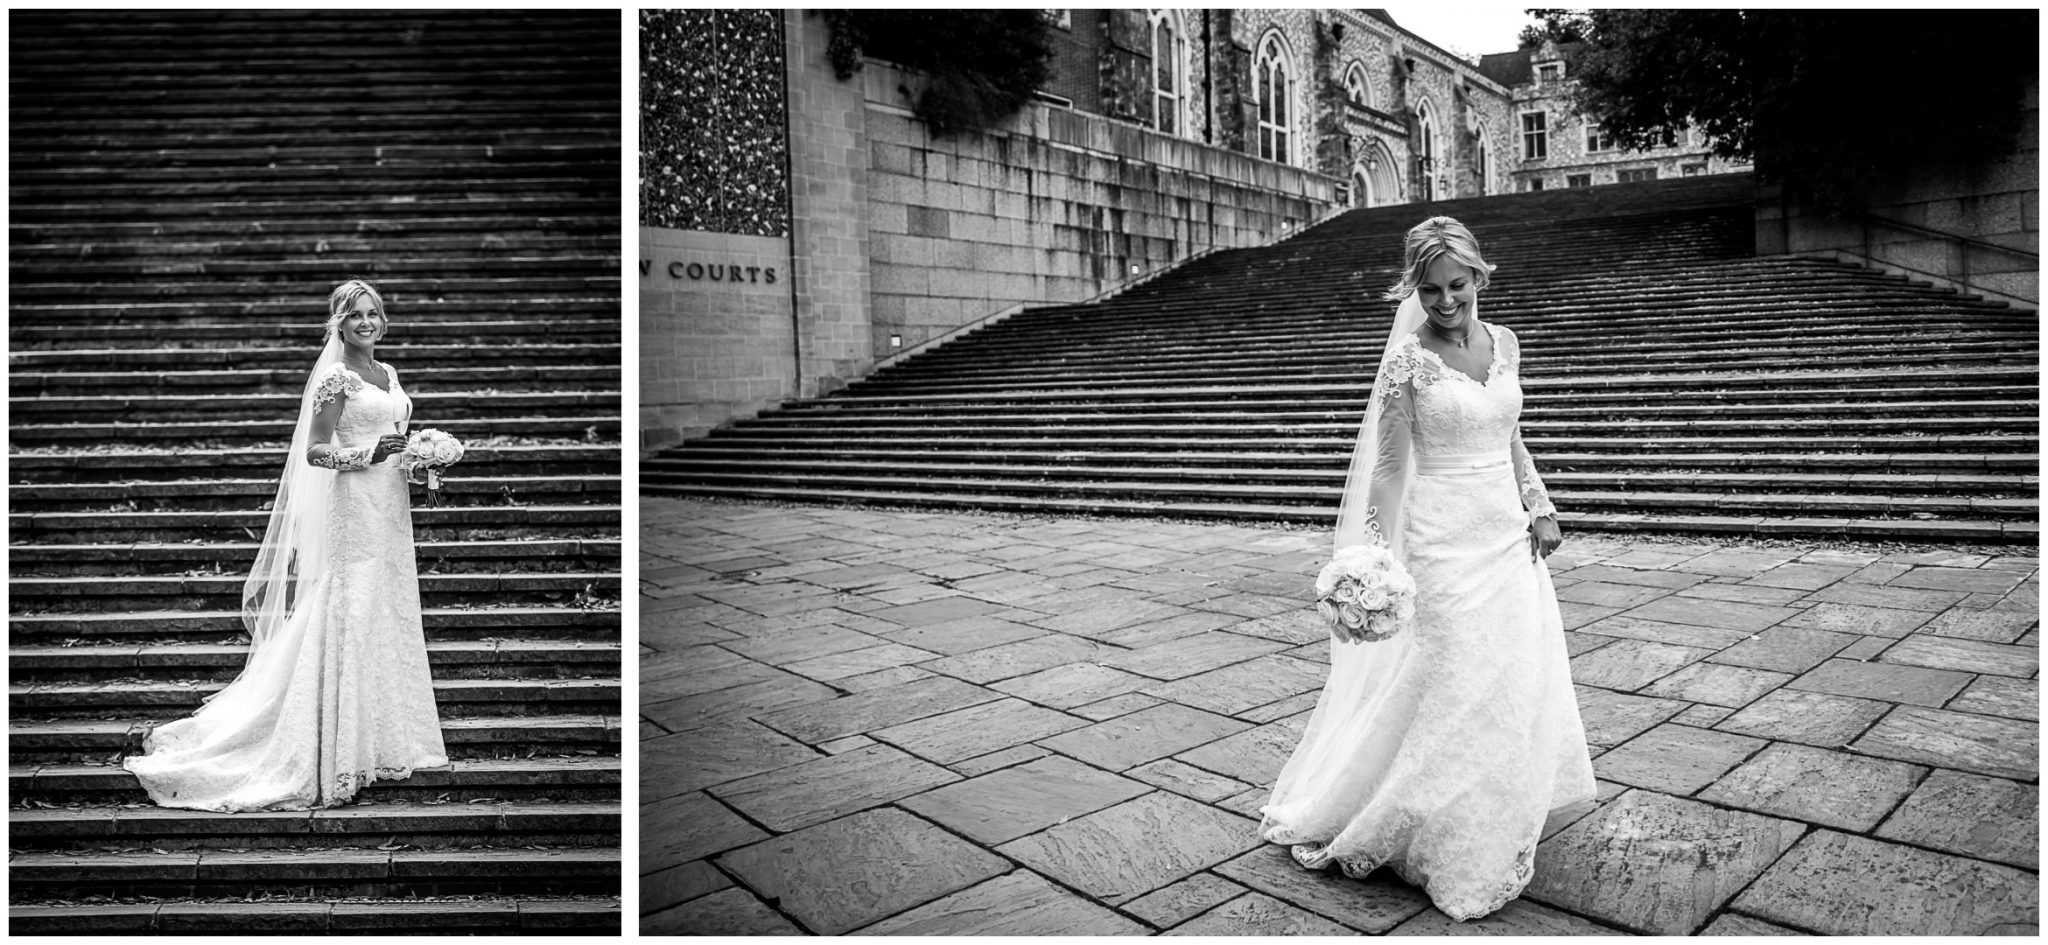 Bridal portrait in black and white on Winchester's law court steps